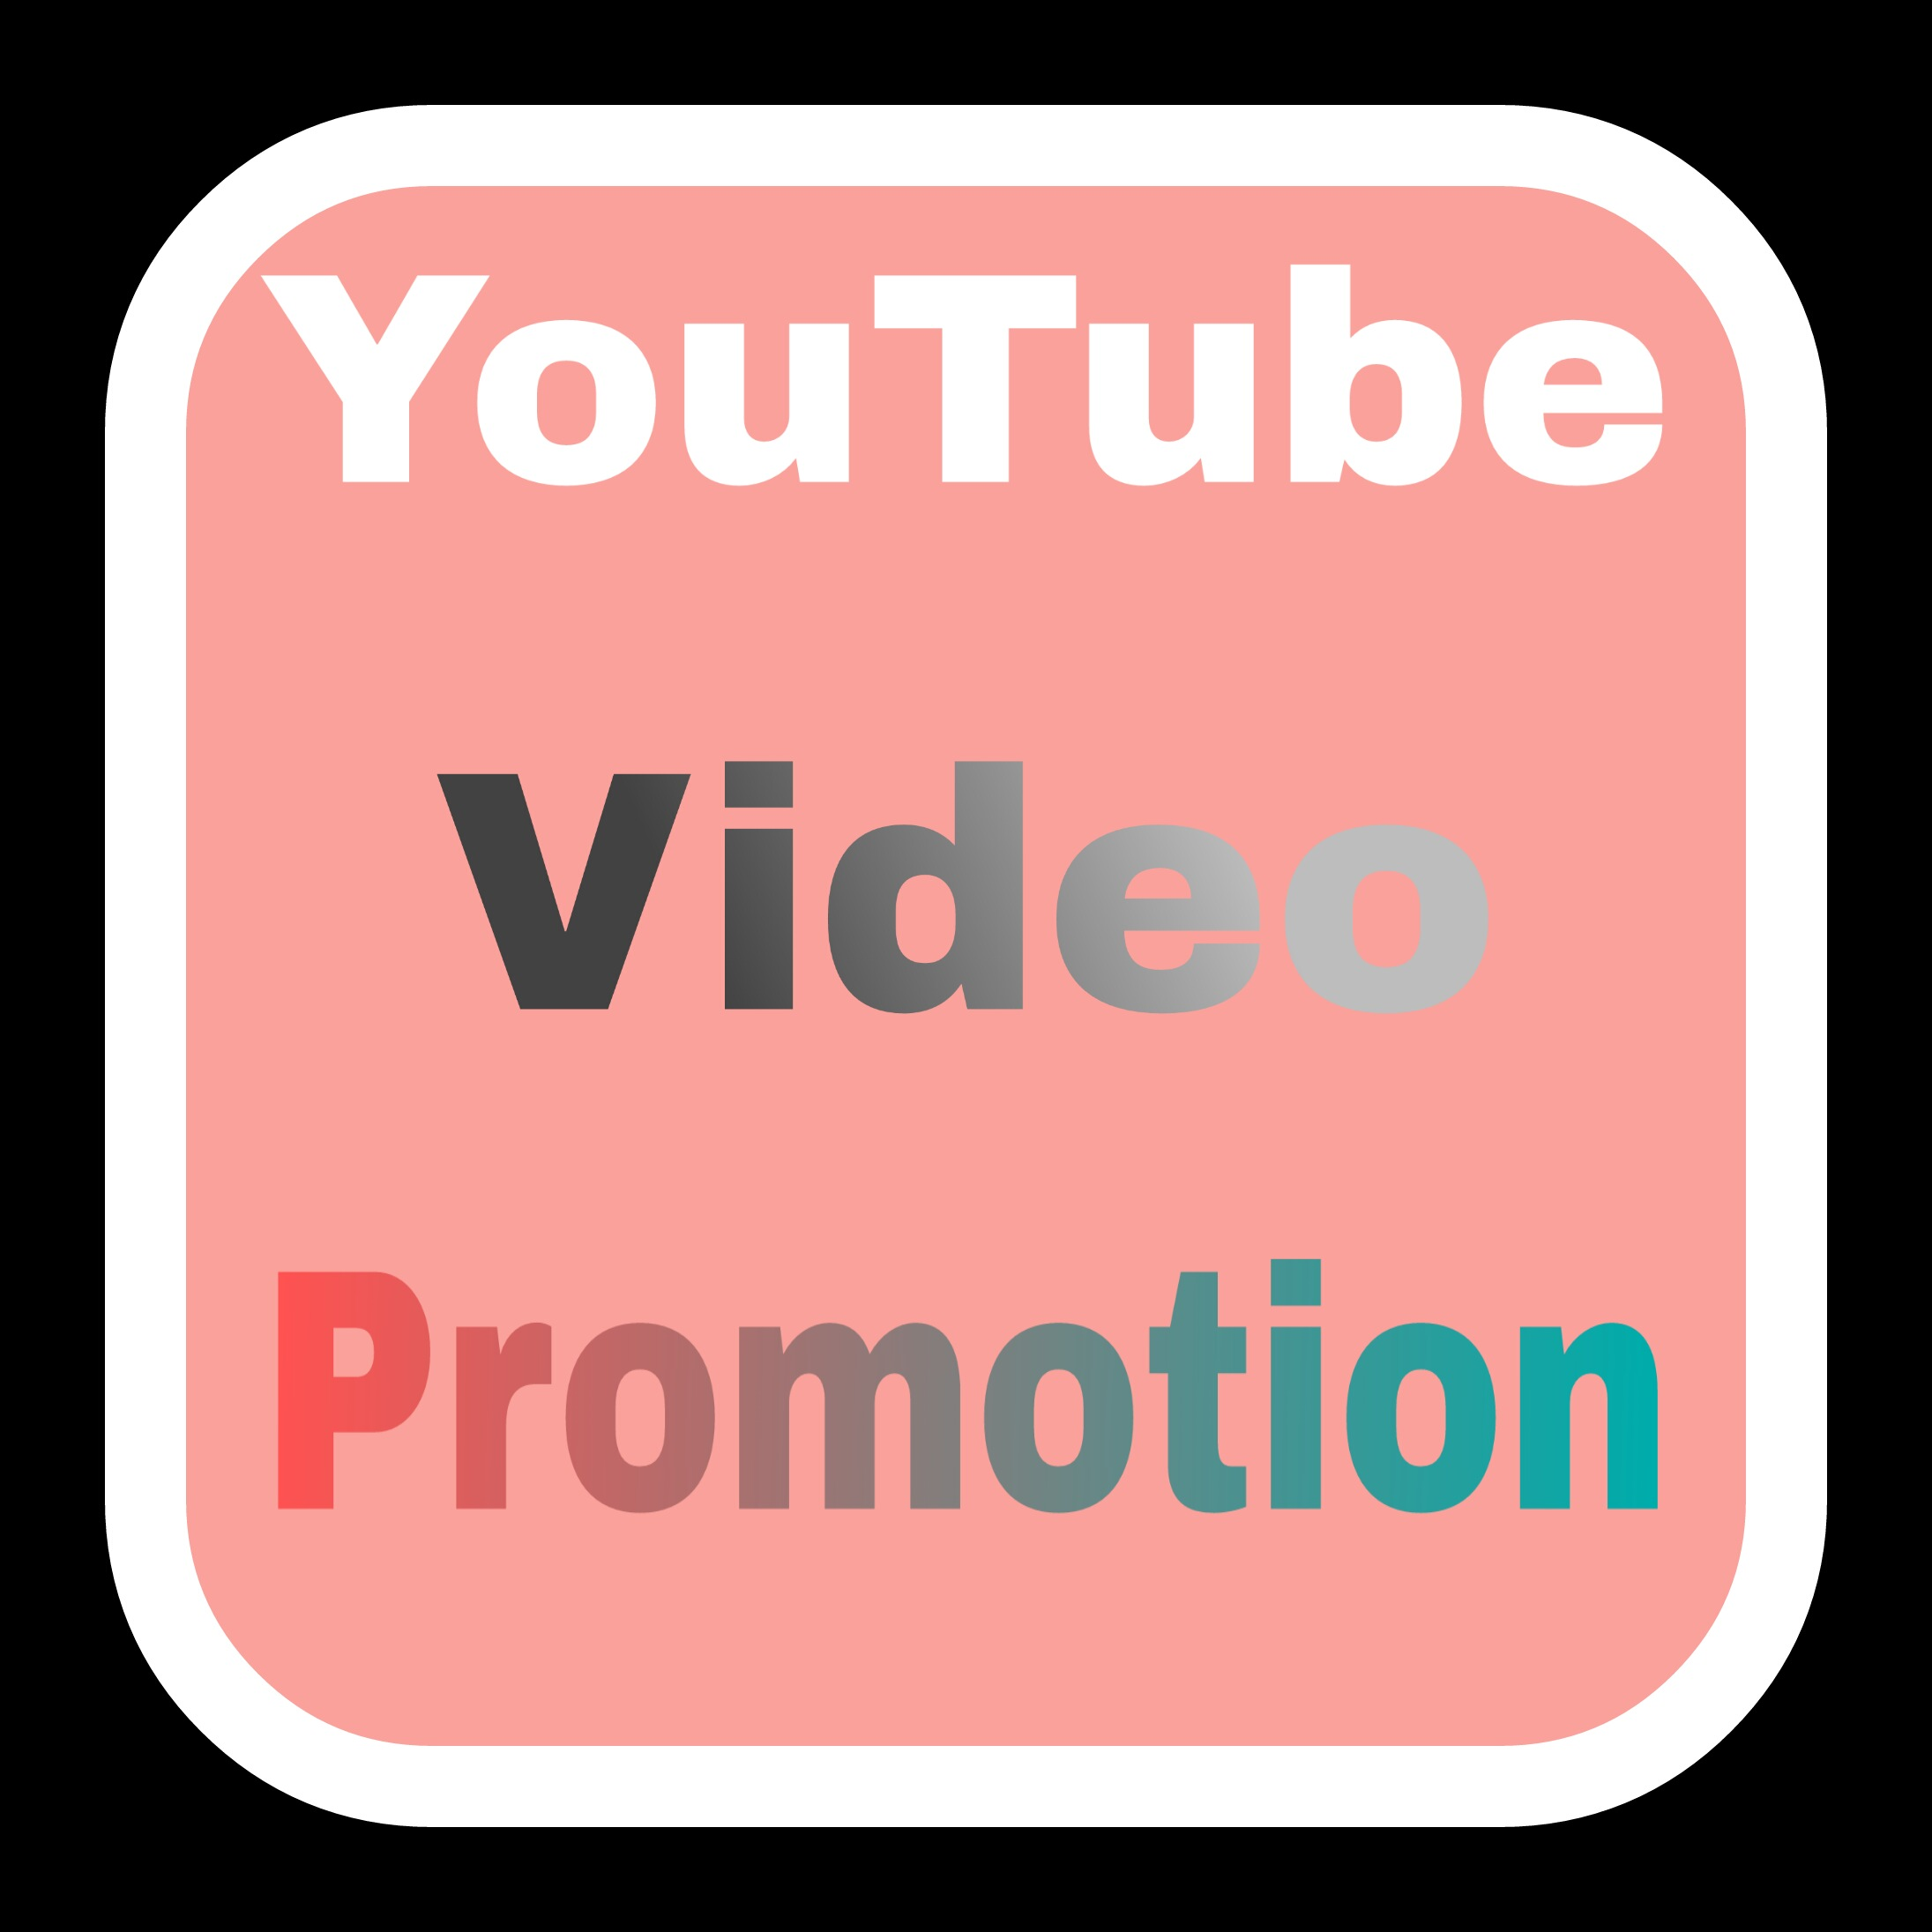 Real Youtube Video Promotion Marketing instant and Fast